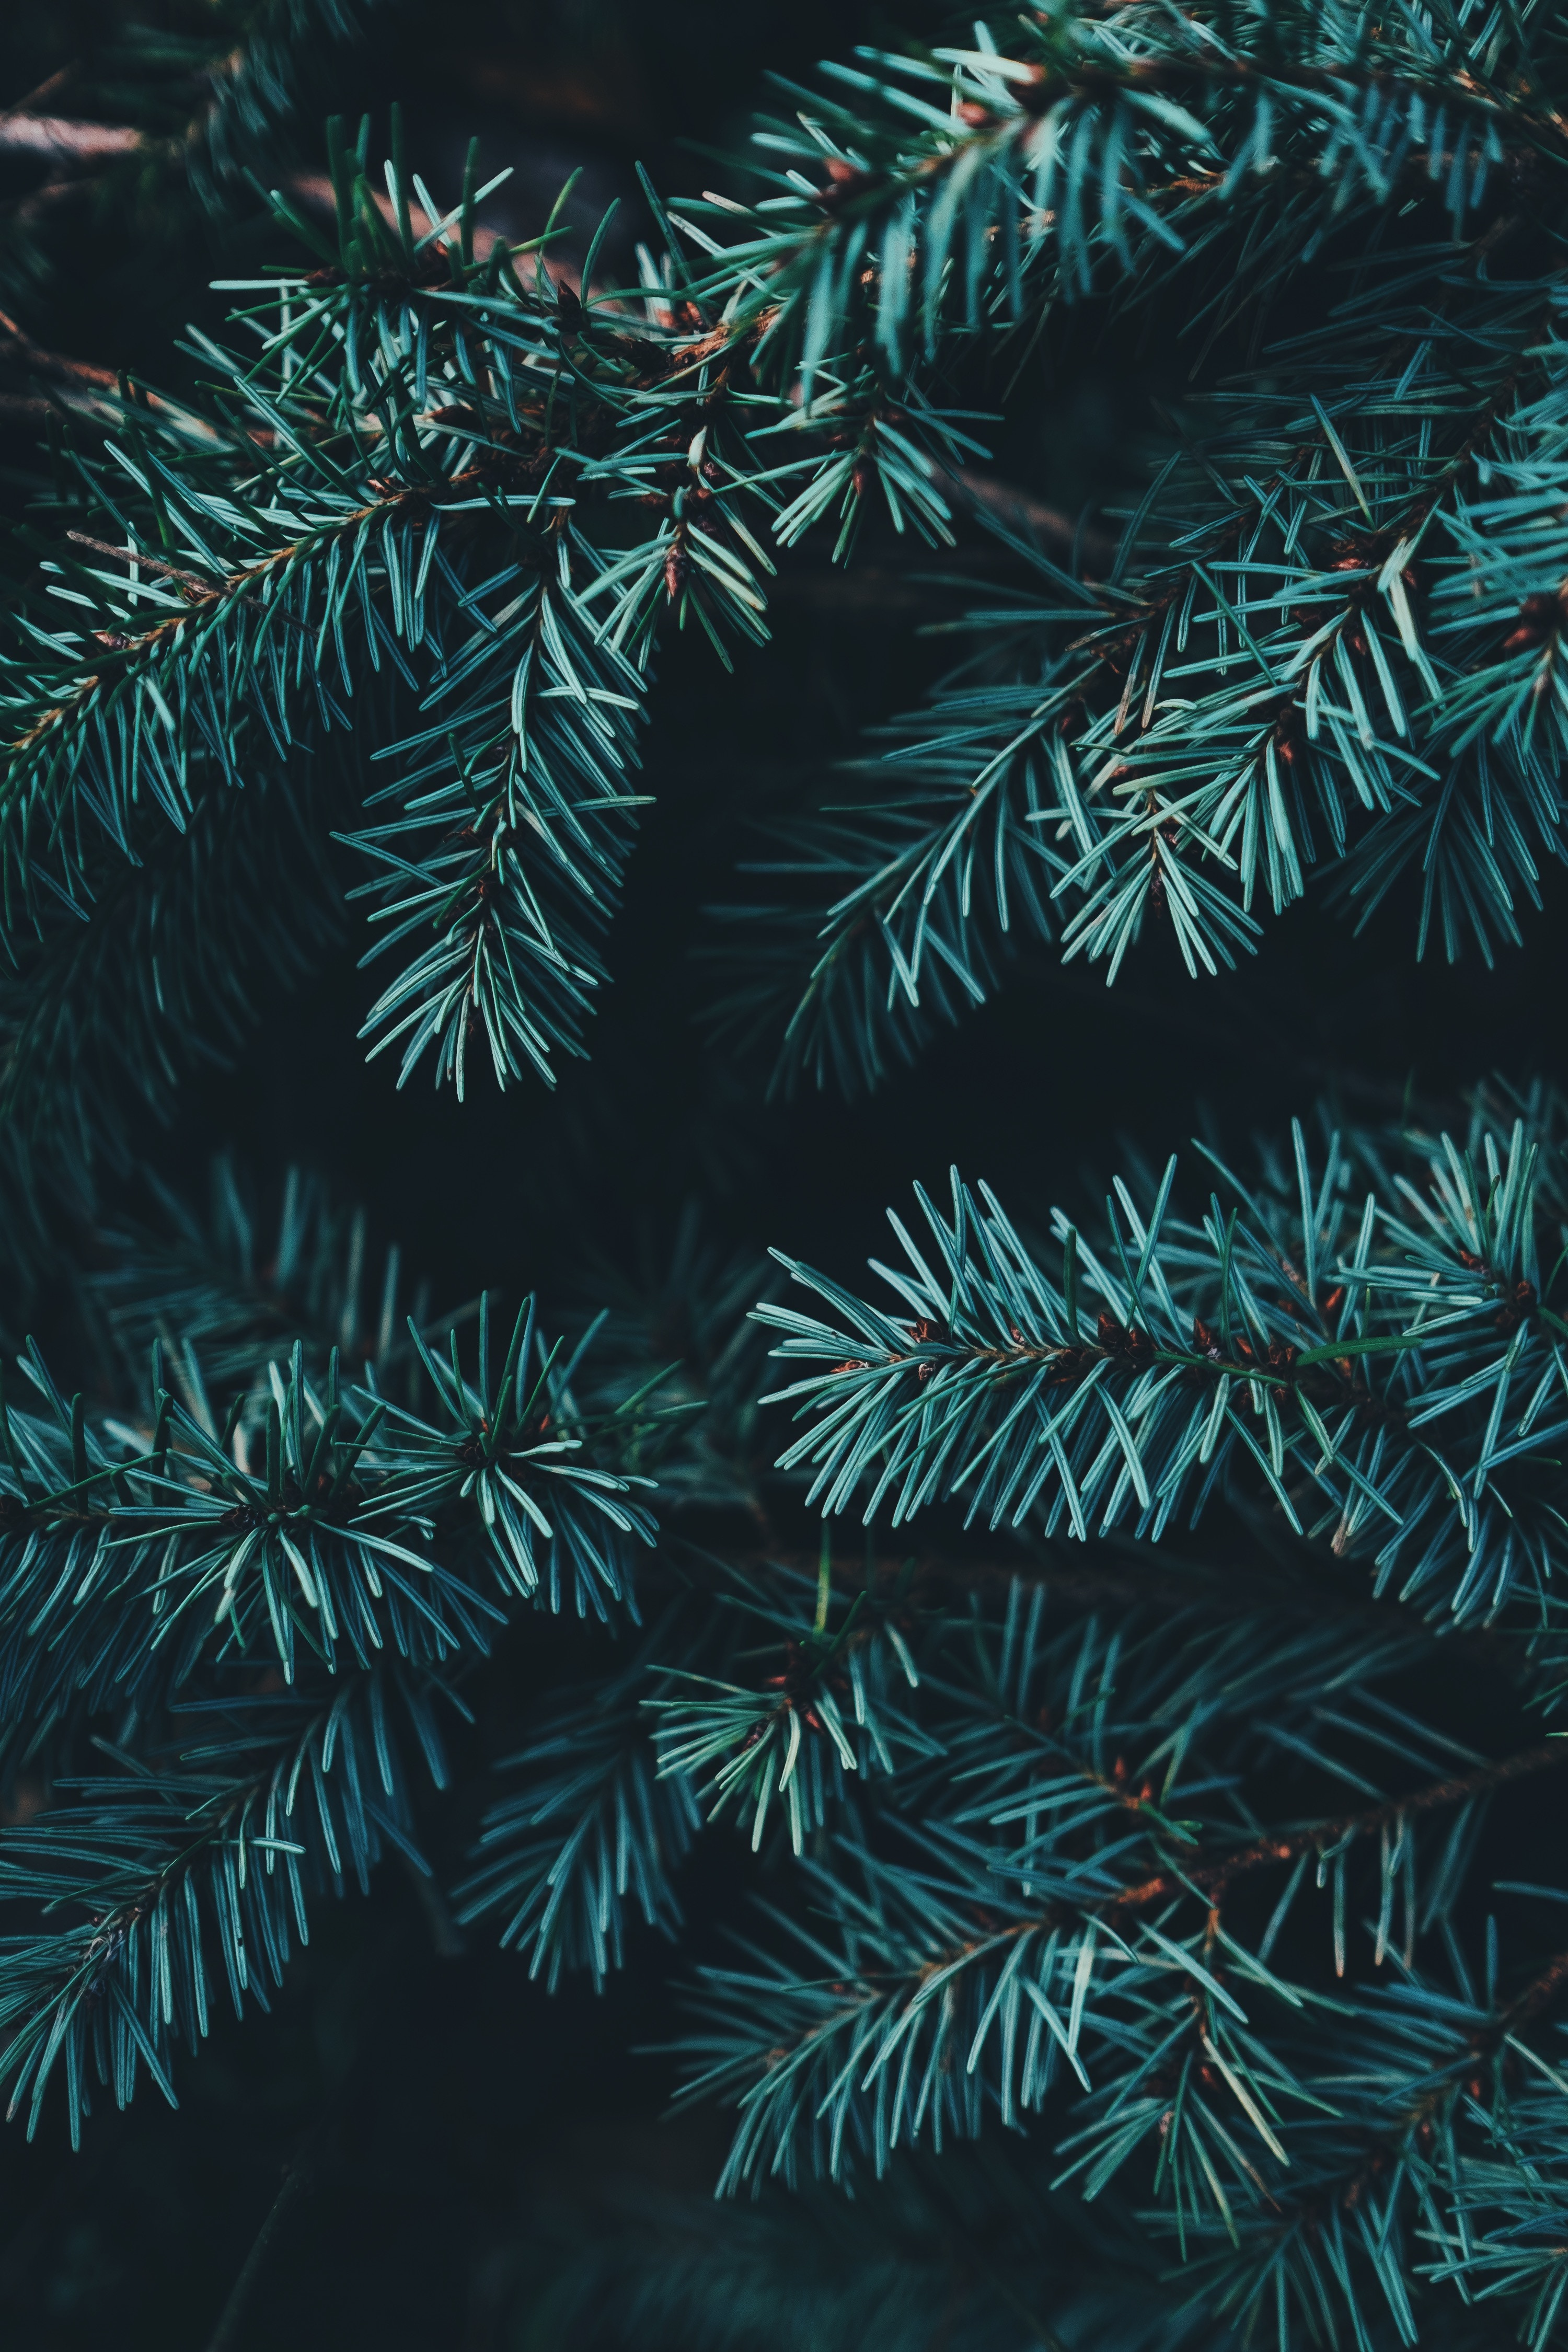 135338 download wallpaper Forest, Nature, Needle, Branches, Spruce, Fir screensavers and pictures for free